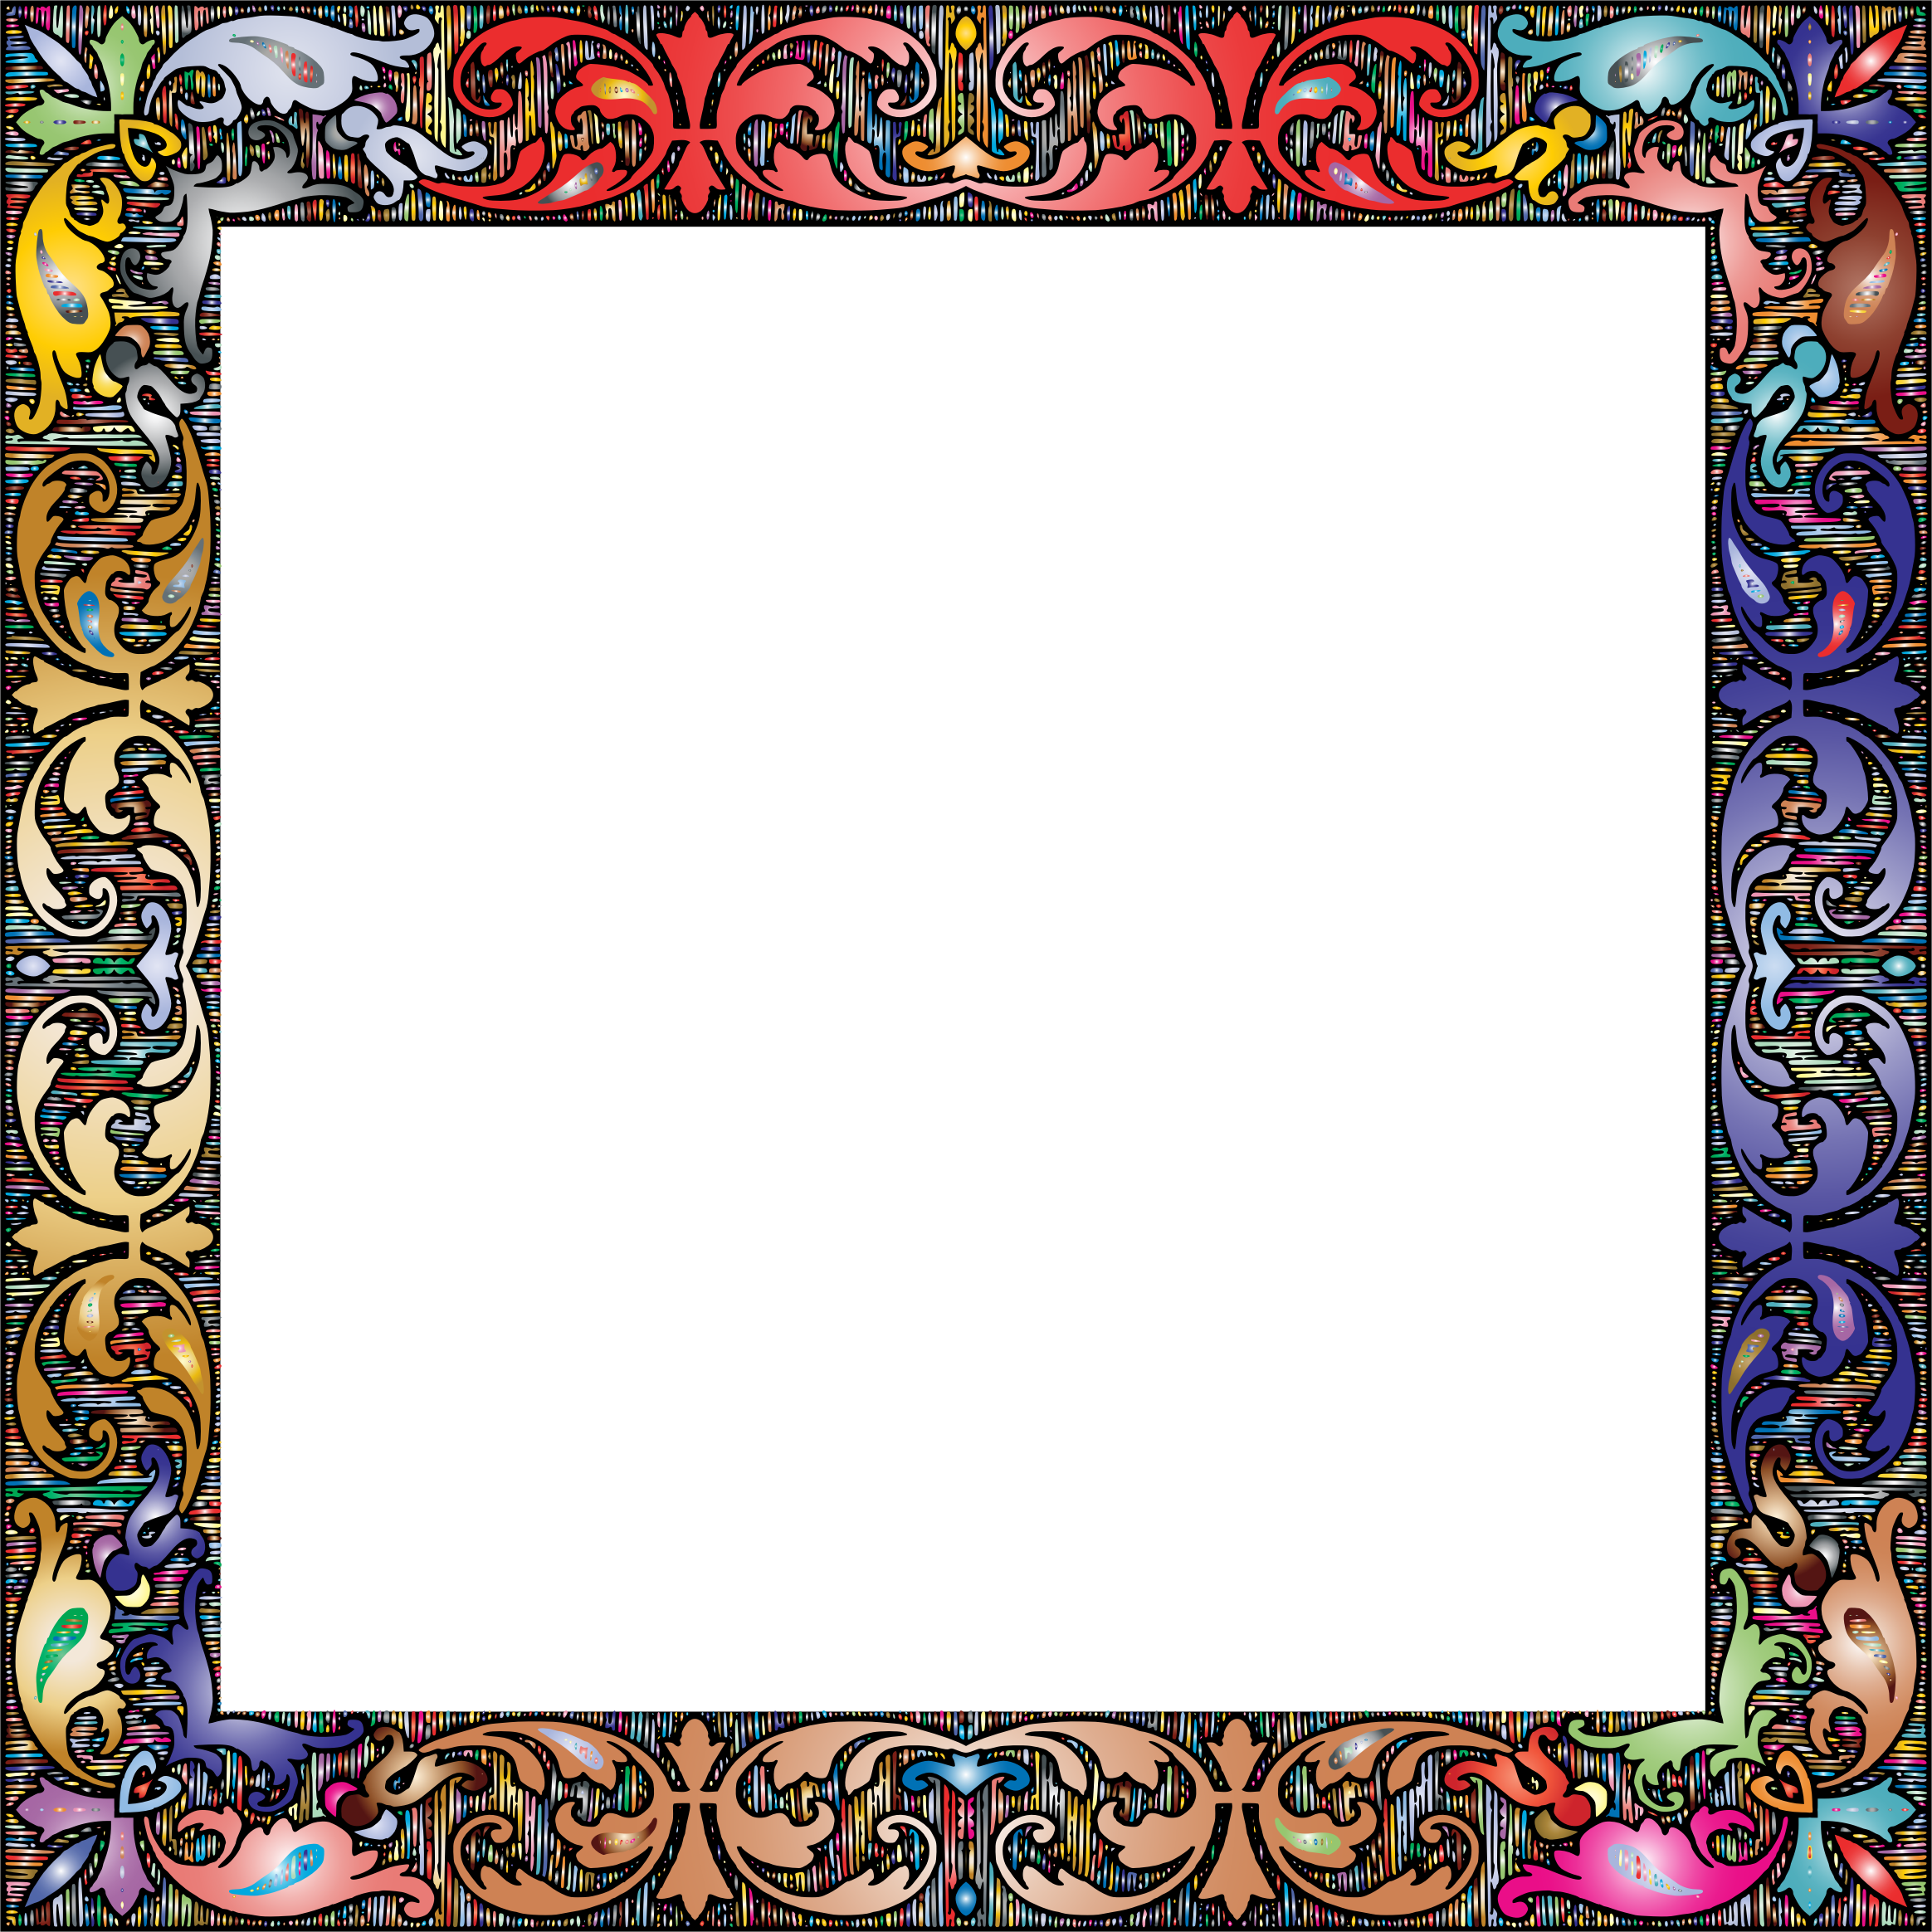 Square frame png. Fancy vintage prismatic icons